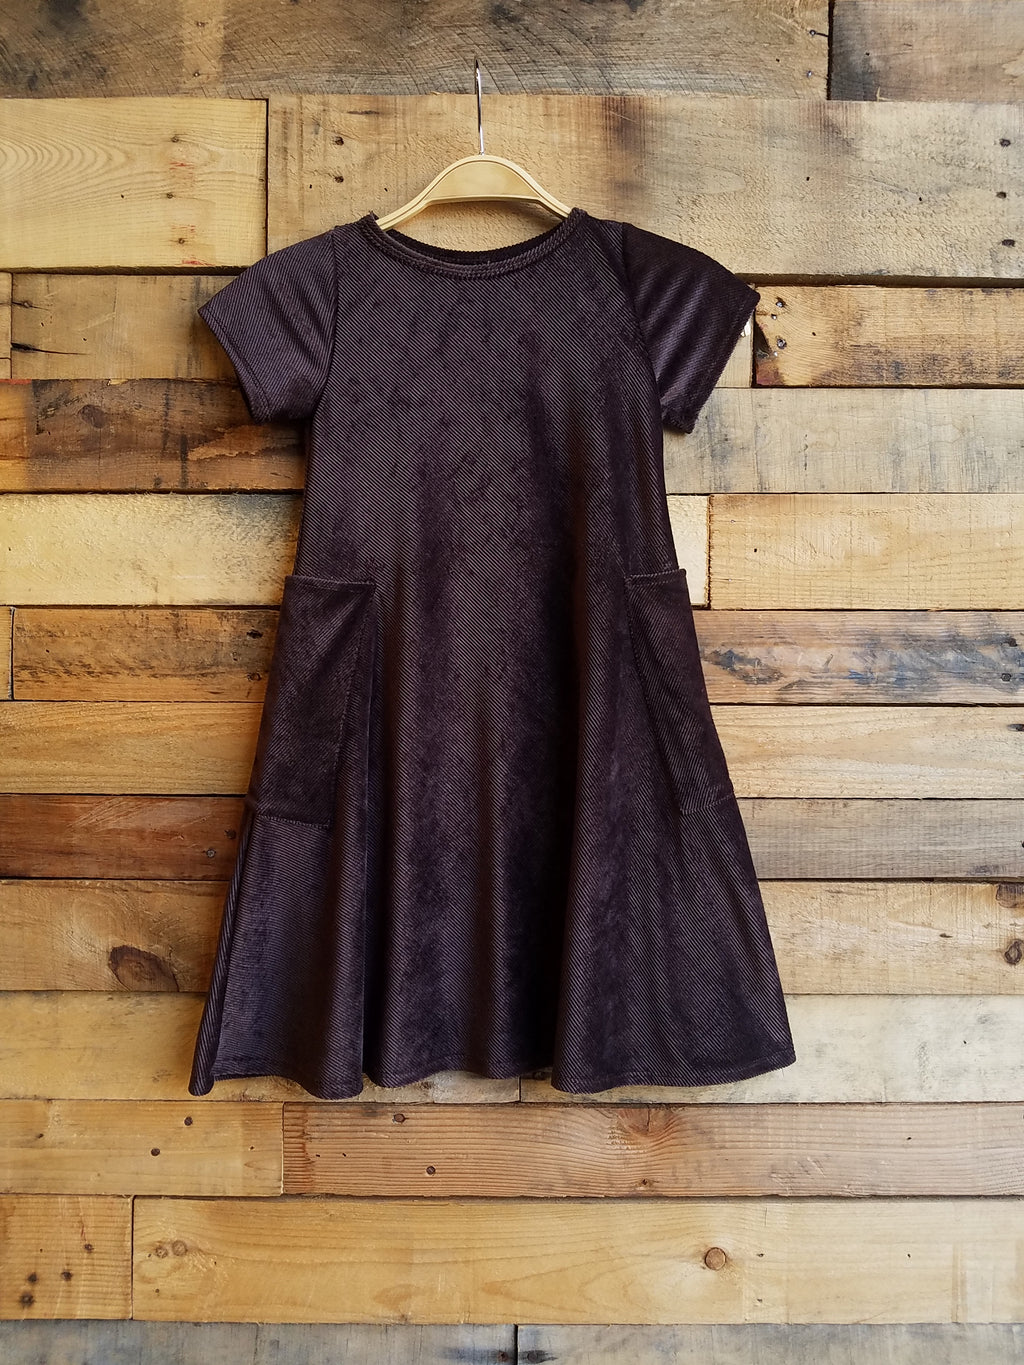 Dallas Swing Dress SAMPLE - Brown